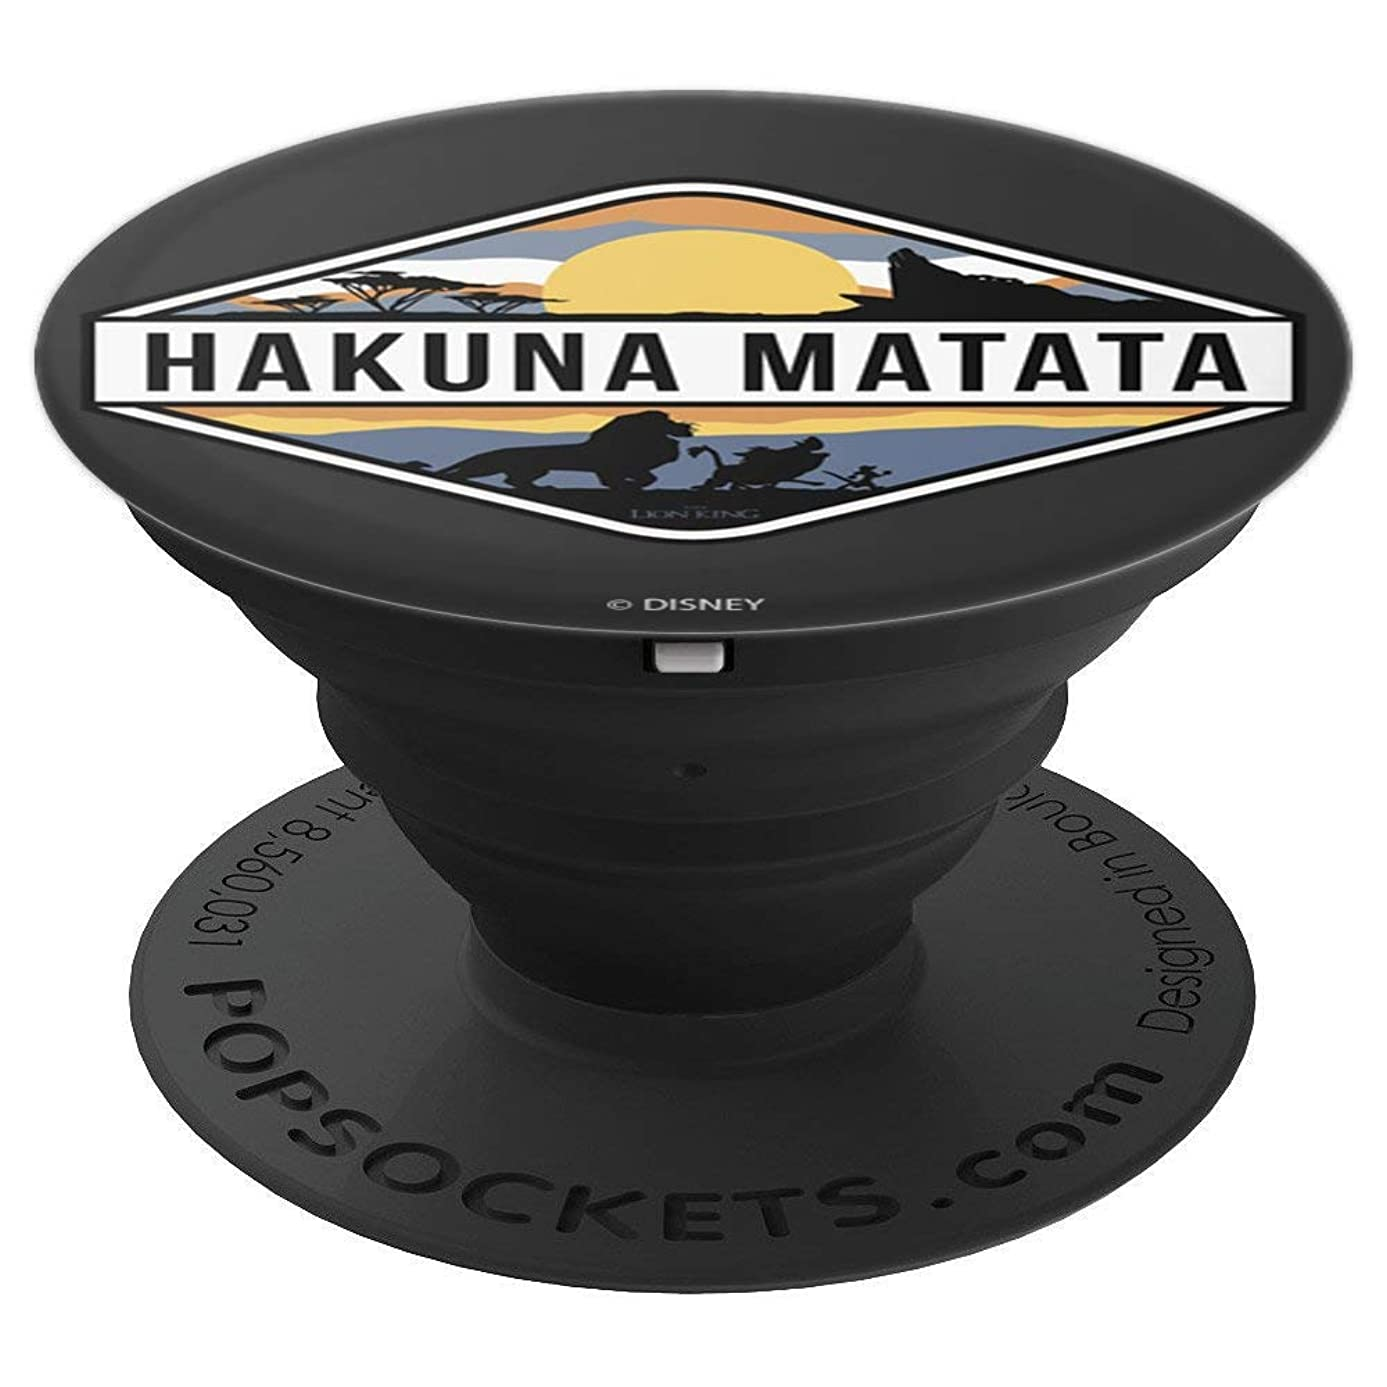 Disney The Lion King Hakuna Matata Pride Land Simba And Crew - PopSockets Grip and Stand for Phones and Tablets